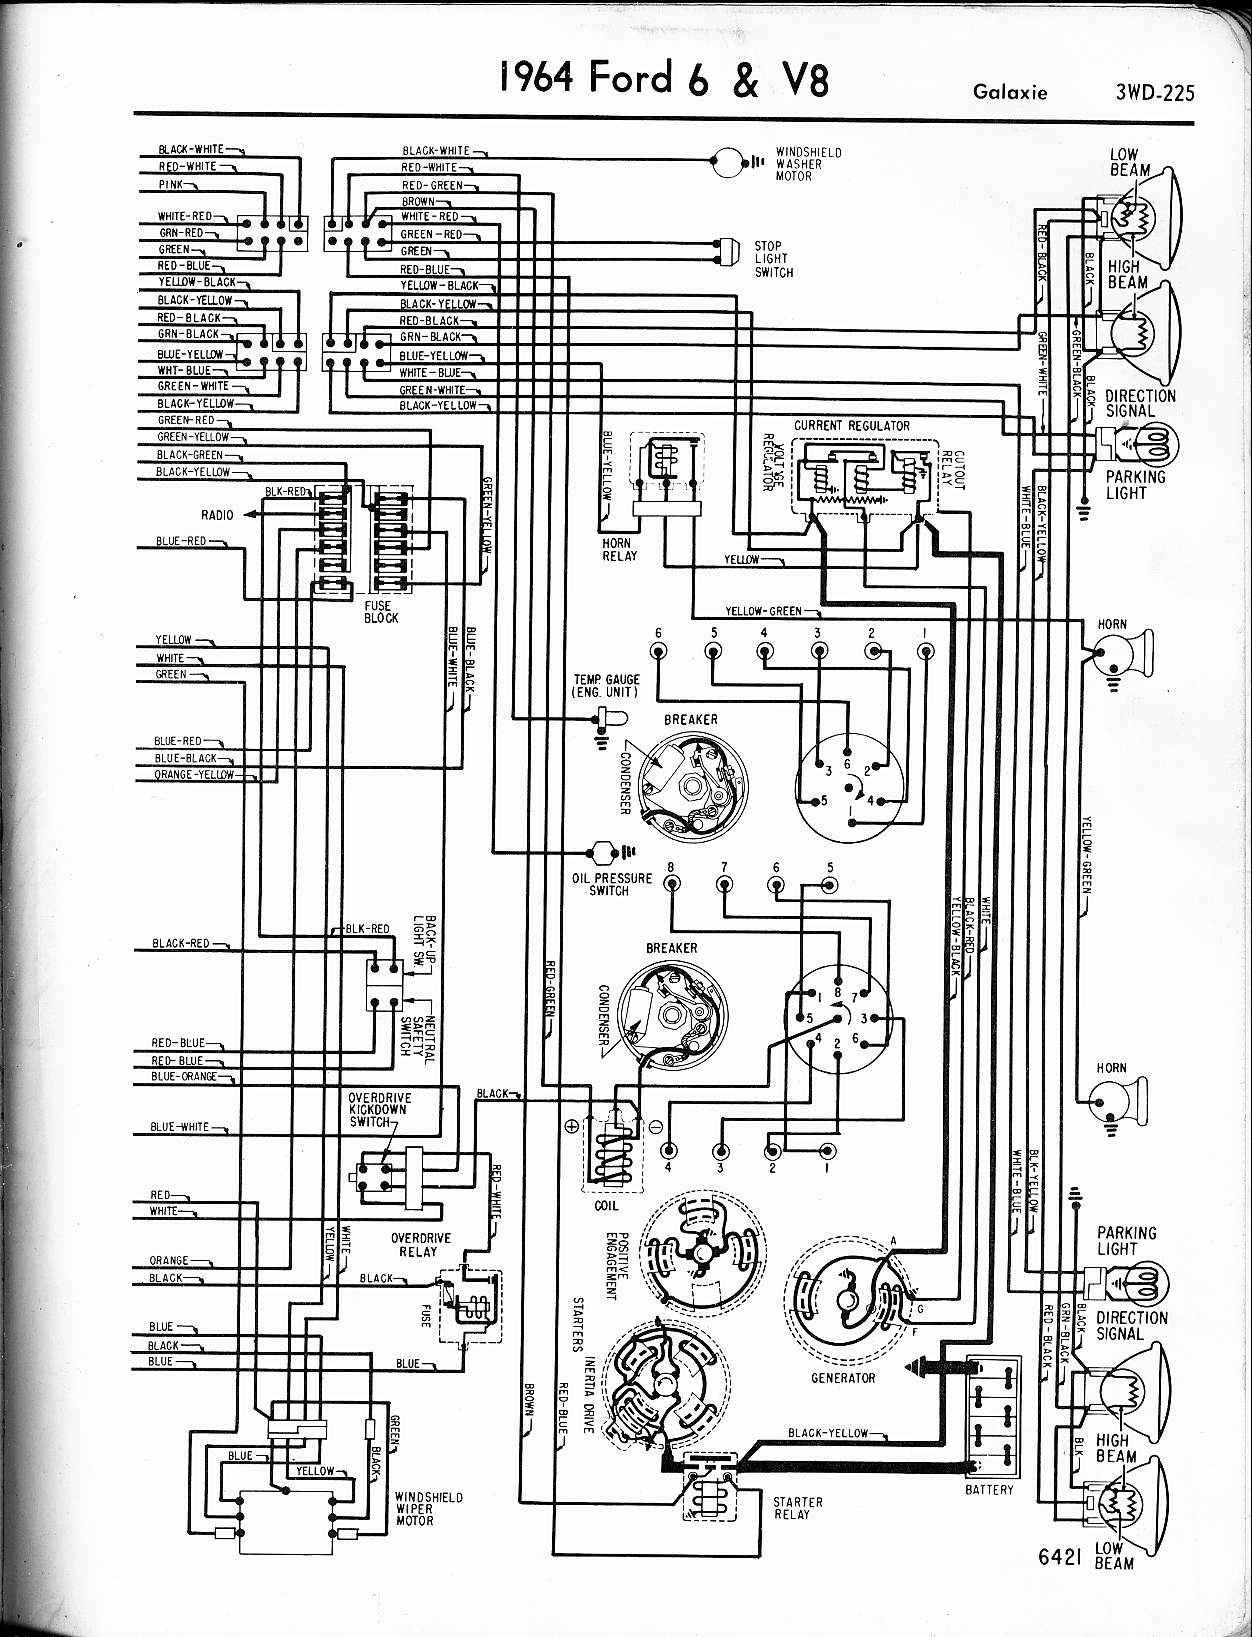 MWire5765 225?resize=665%2C869 1962 ford falcon wiring diagram wiring diagram 1964 ford falcon fuse box location at aneh.co